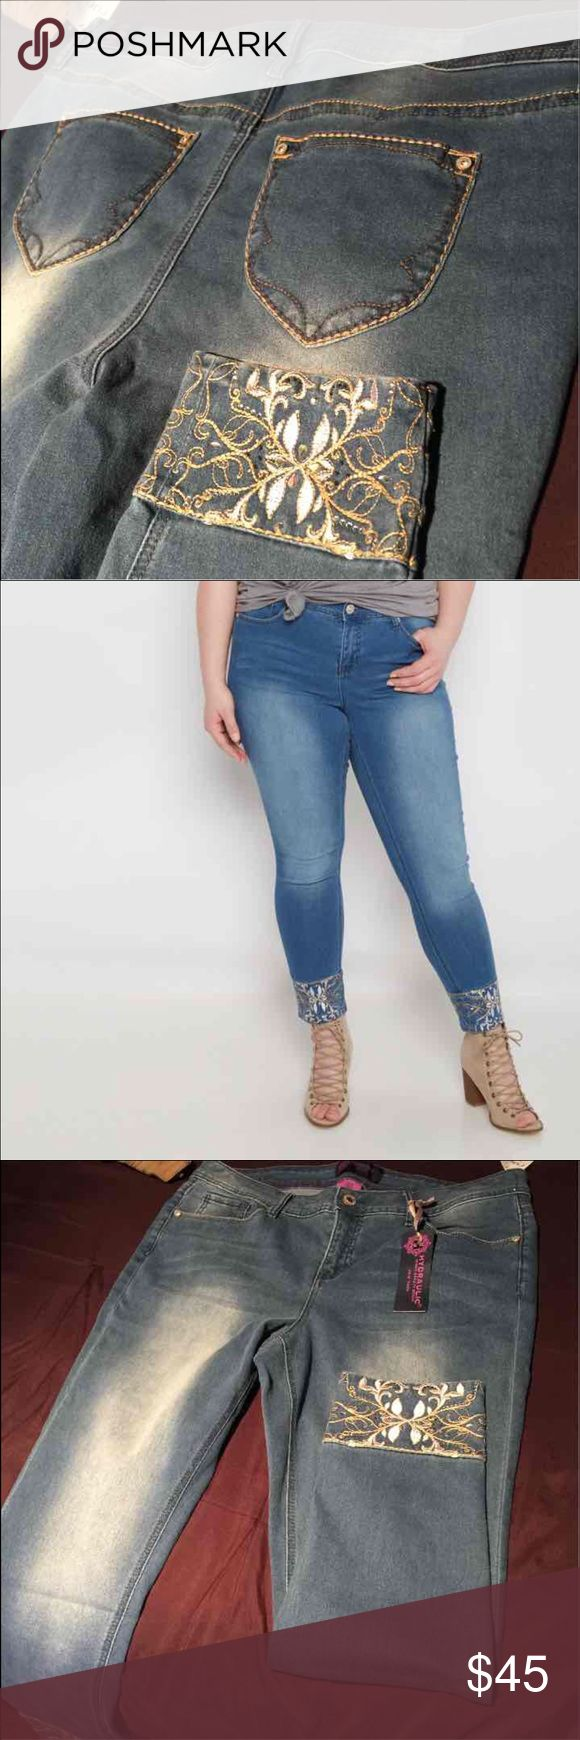 Size 18 plus size jeans This stunning skinny jean is fashioned with a sandblasted wash and whiskering. The cuffs are decked out with beautiful vintage inspired embroidery and shimmering stones for a flawless finish. Mid rise. Fitted through leg. Nwt Hydraulic Jeans Skinny